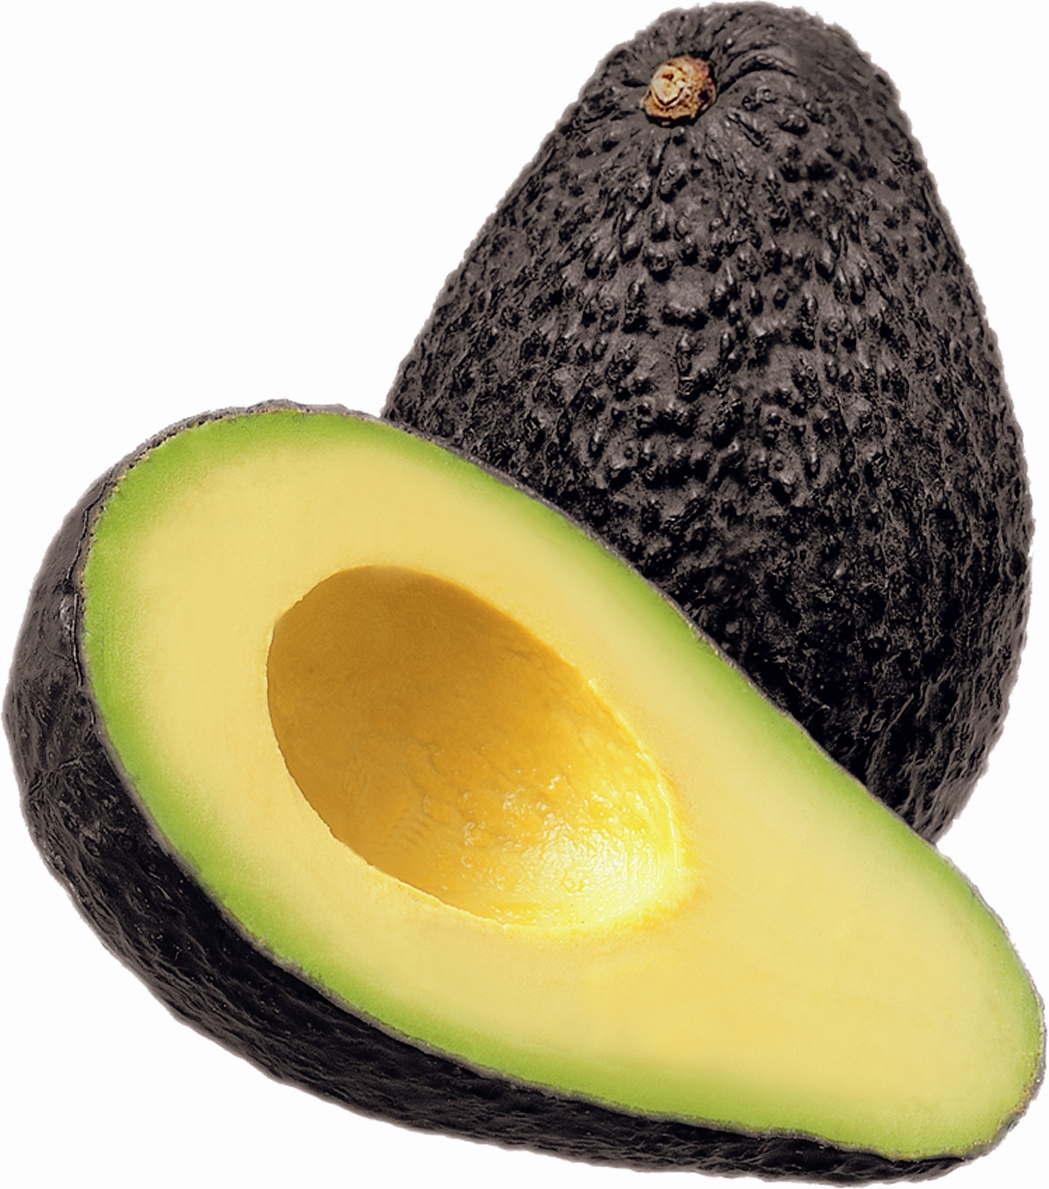 ve been doing some (delicious) experimenting with avocados lately.